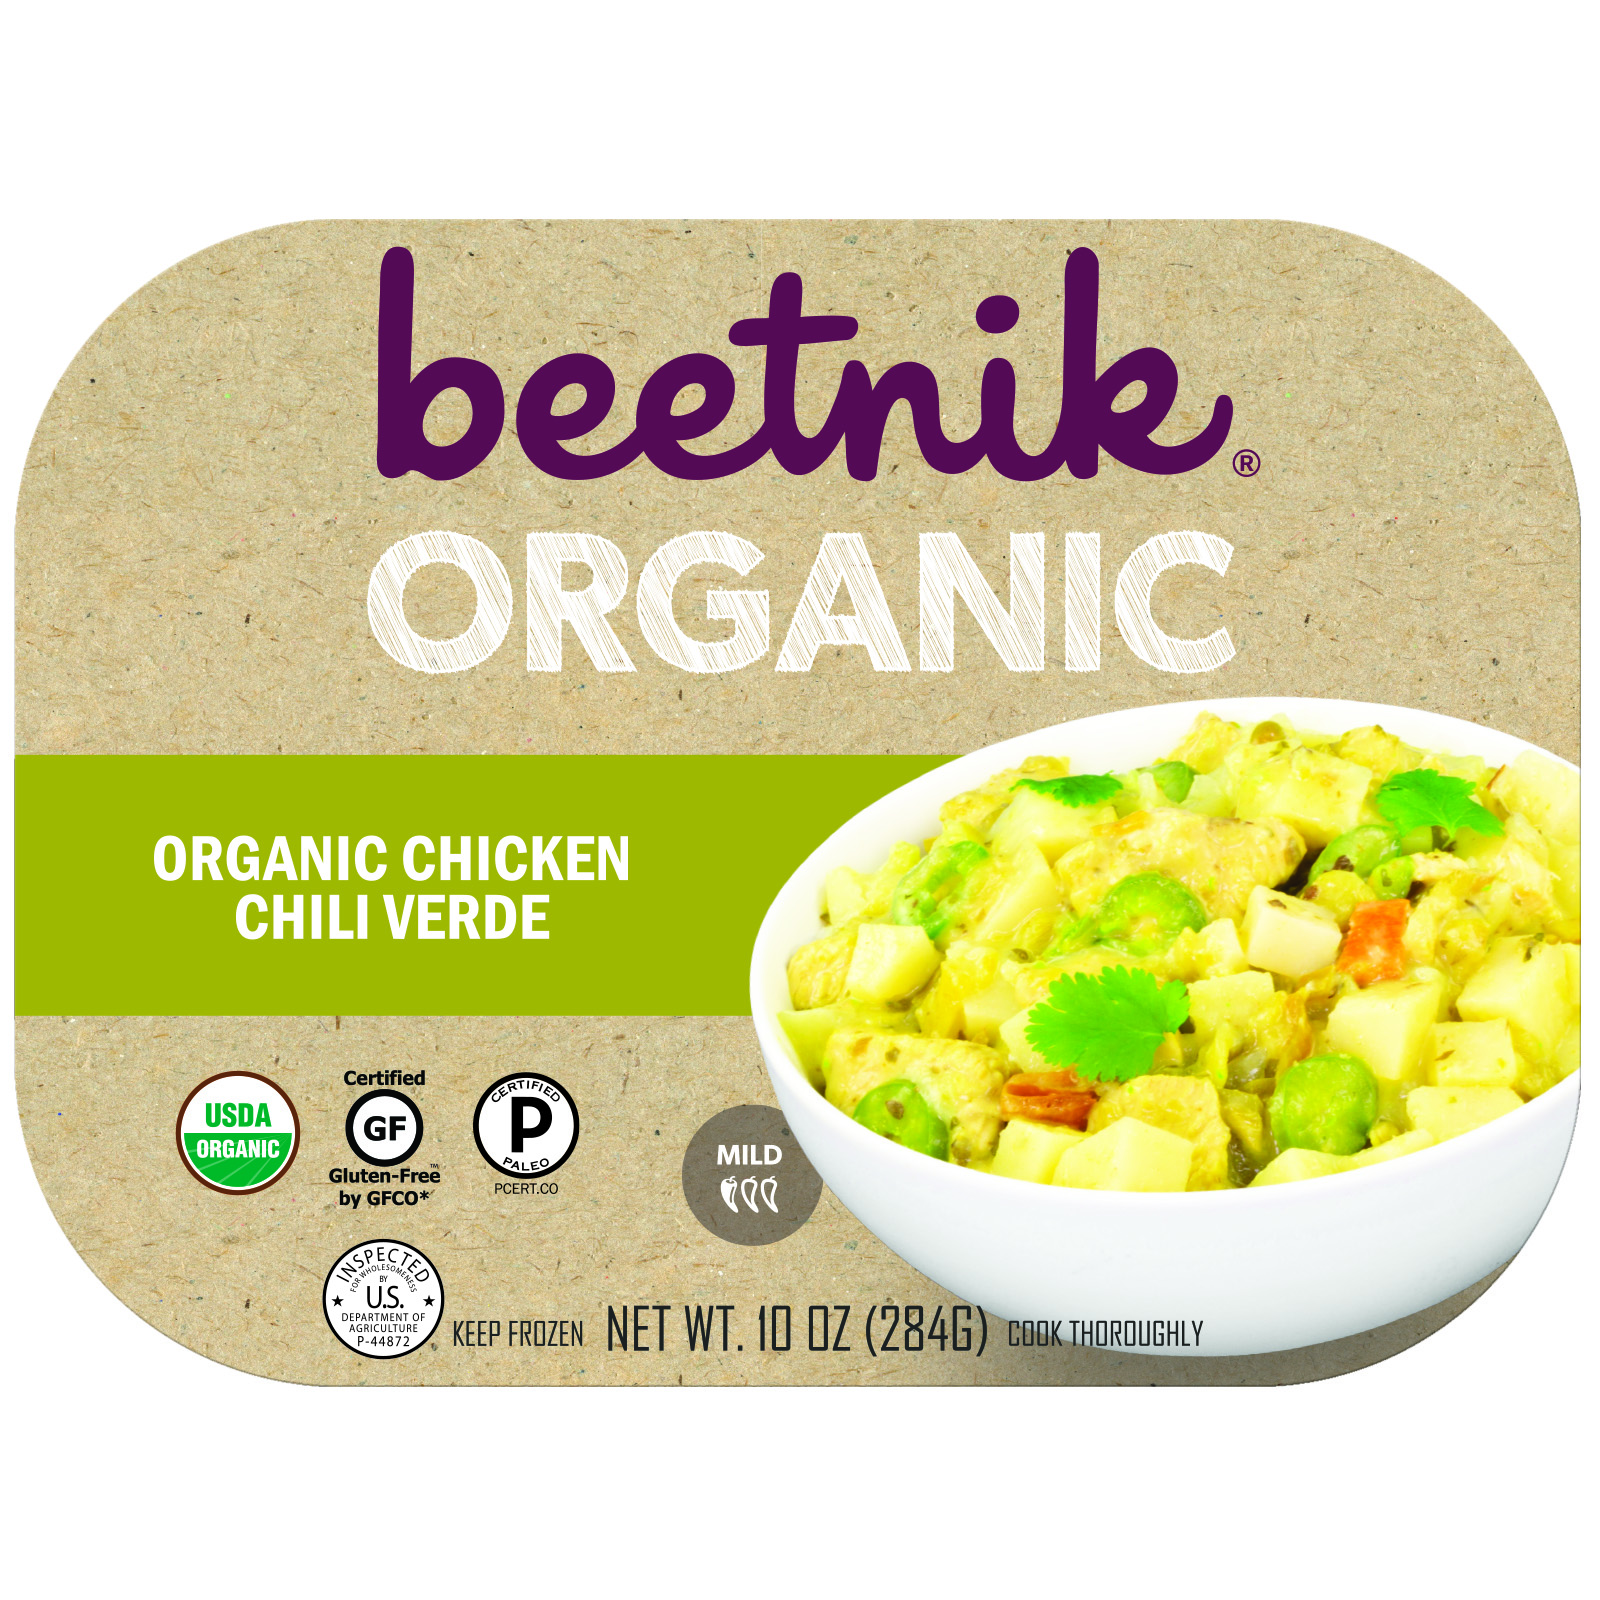 Organic Frozen Food Brand Introduces Two New Flavorful Varieties